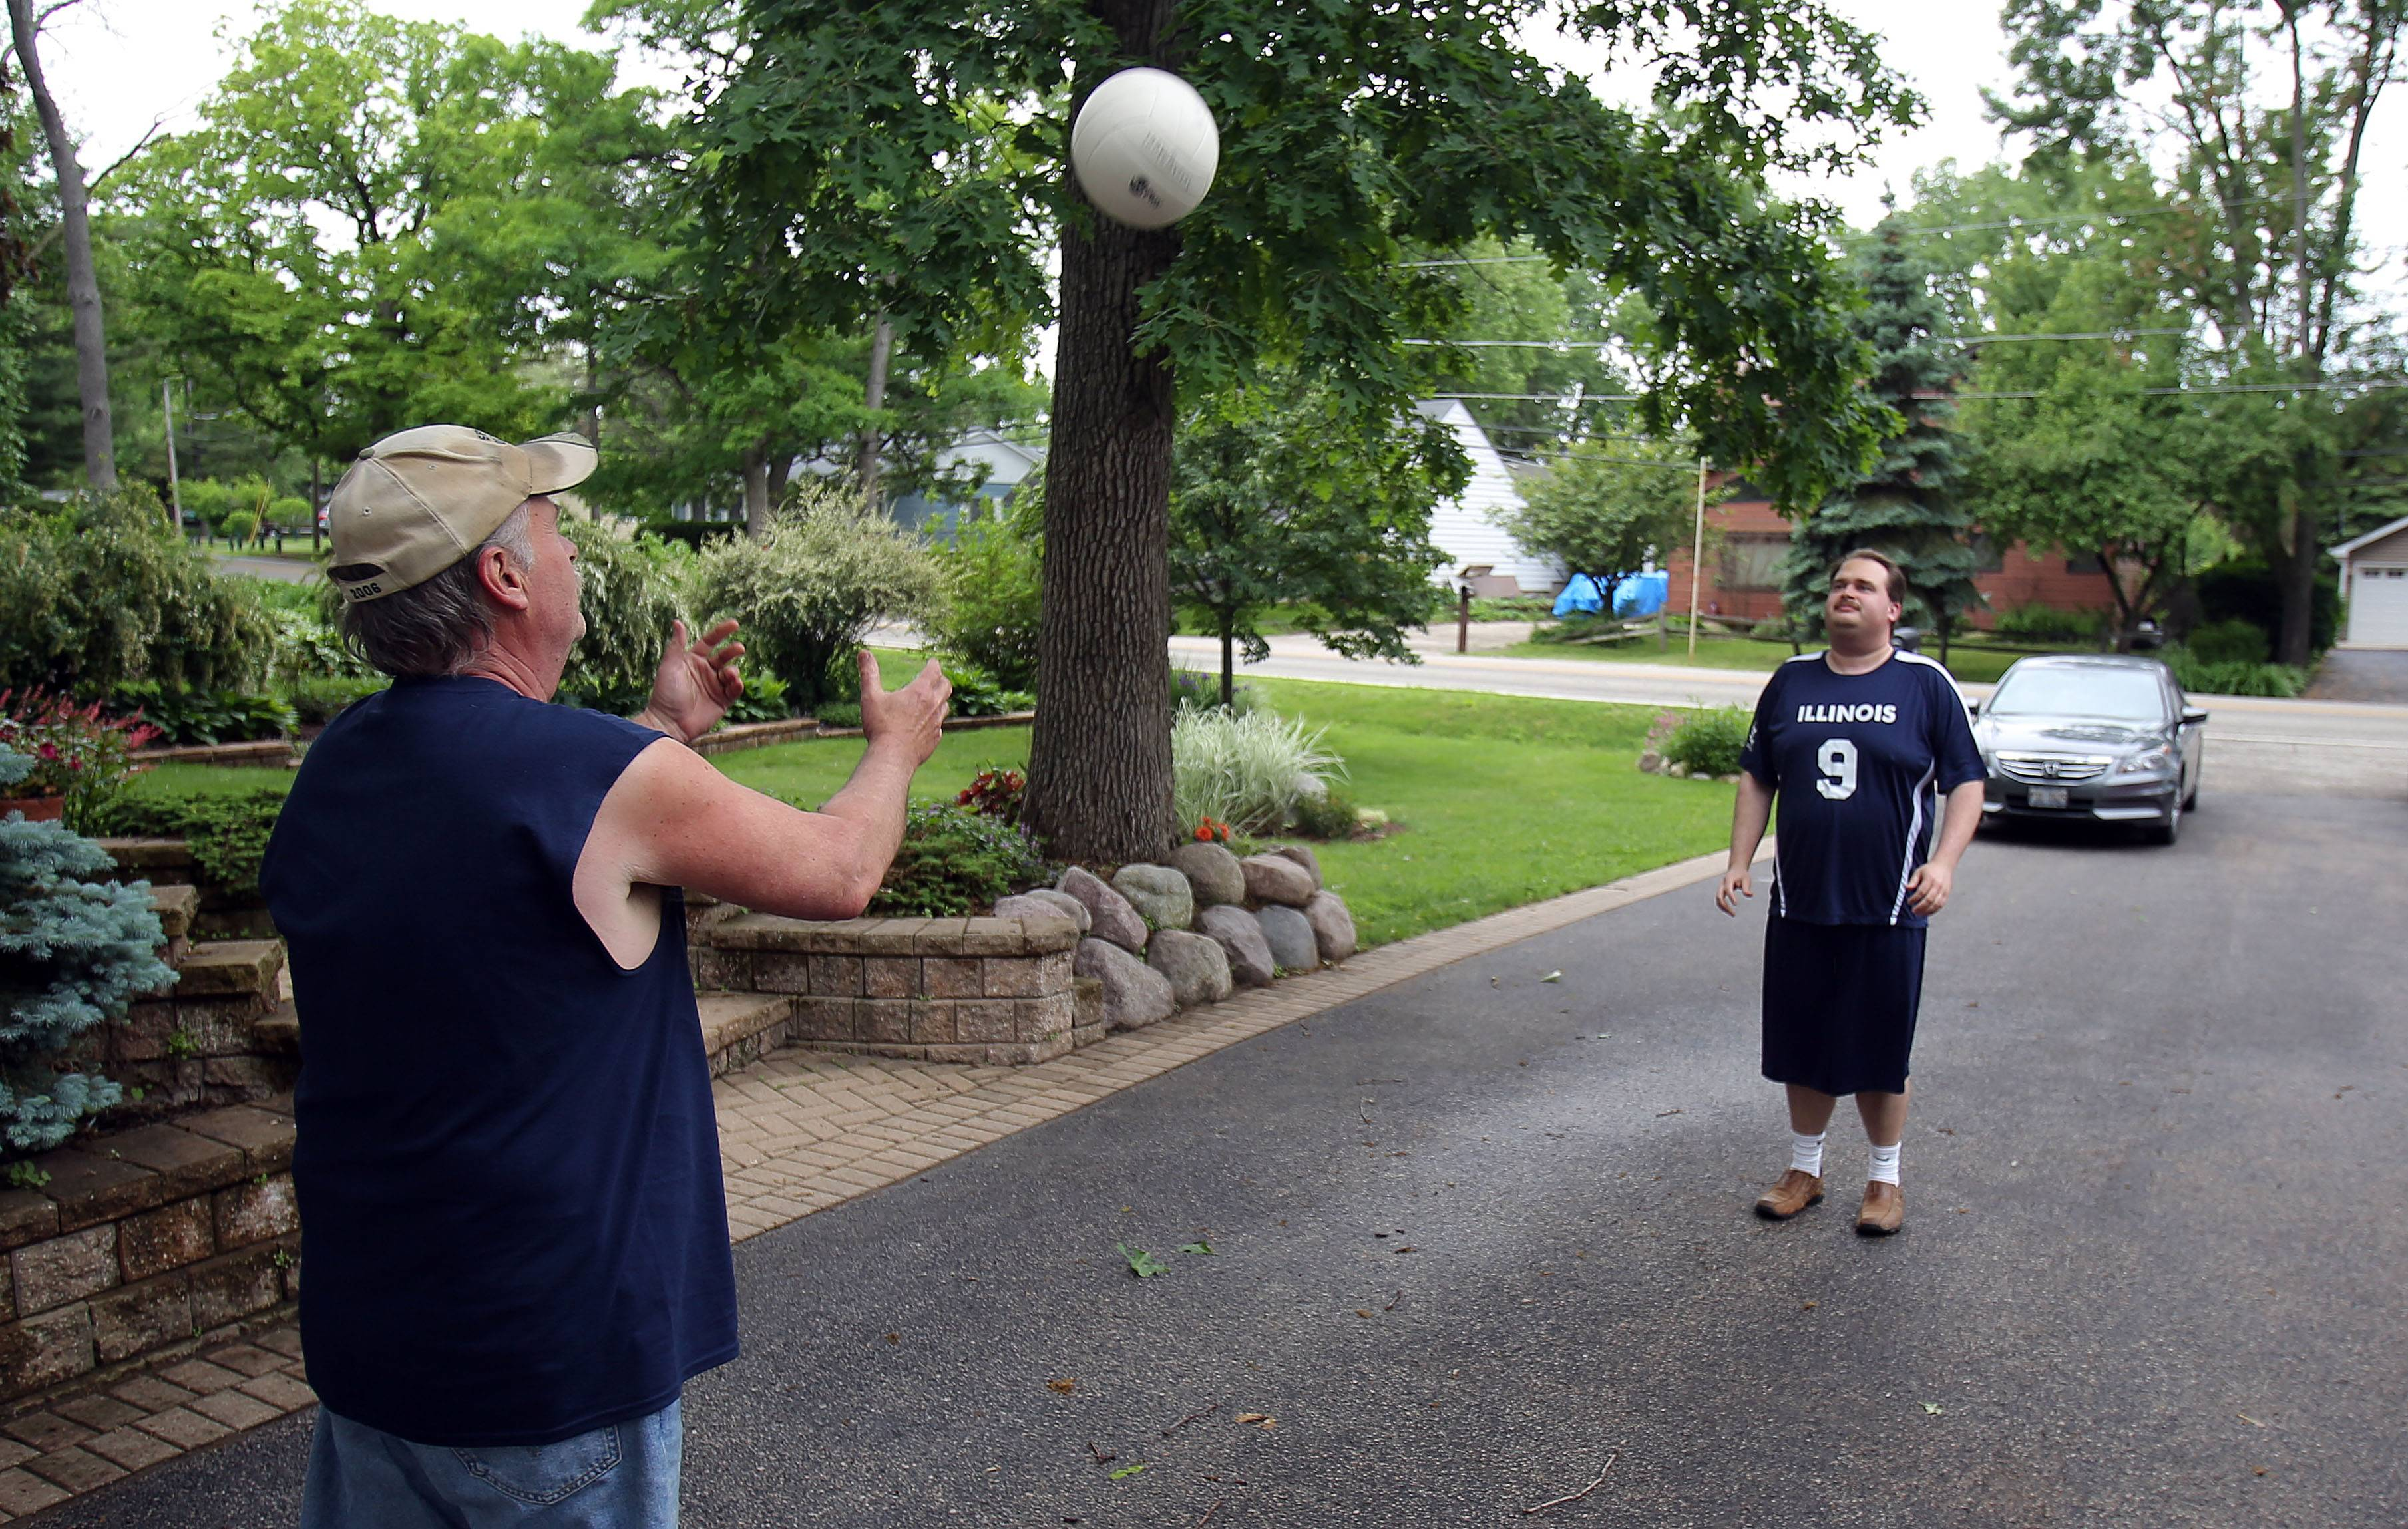 Jason Coy, right, of Wildwood practices volleyball in his driveway with his father, Marion. Jason will represent Illinois on the volleyball team at the upcoming Special Olympics 2014 USA Games in New Jersey.